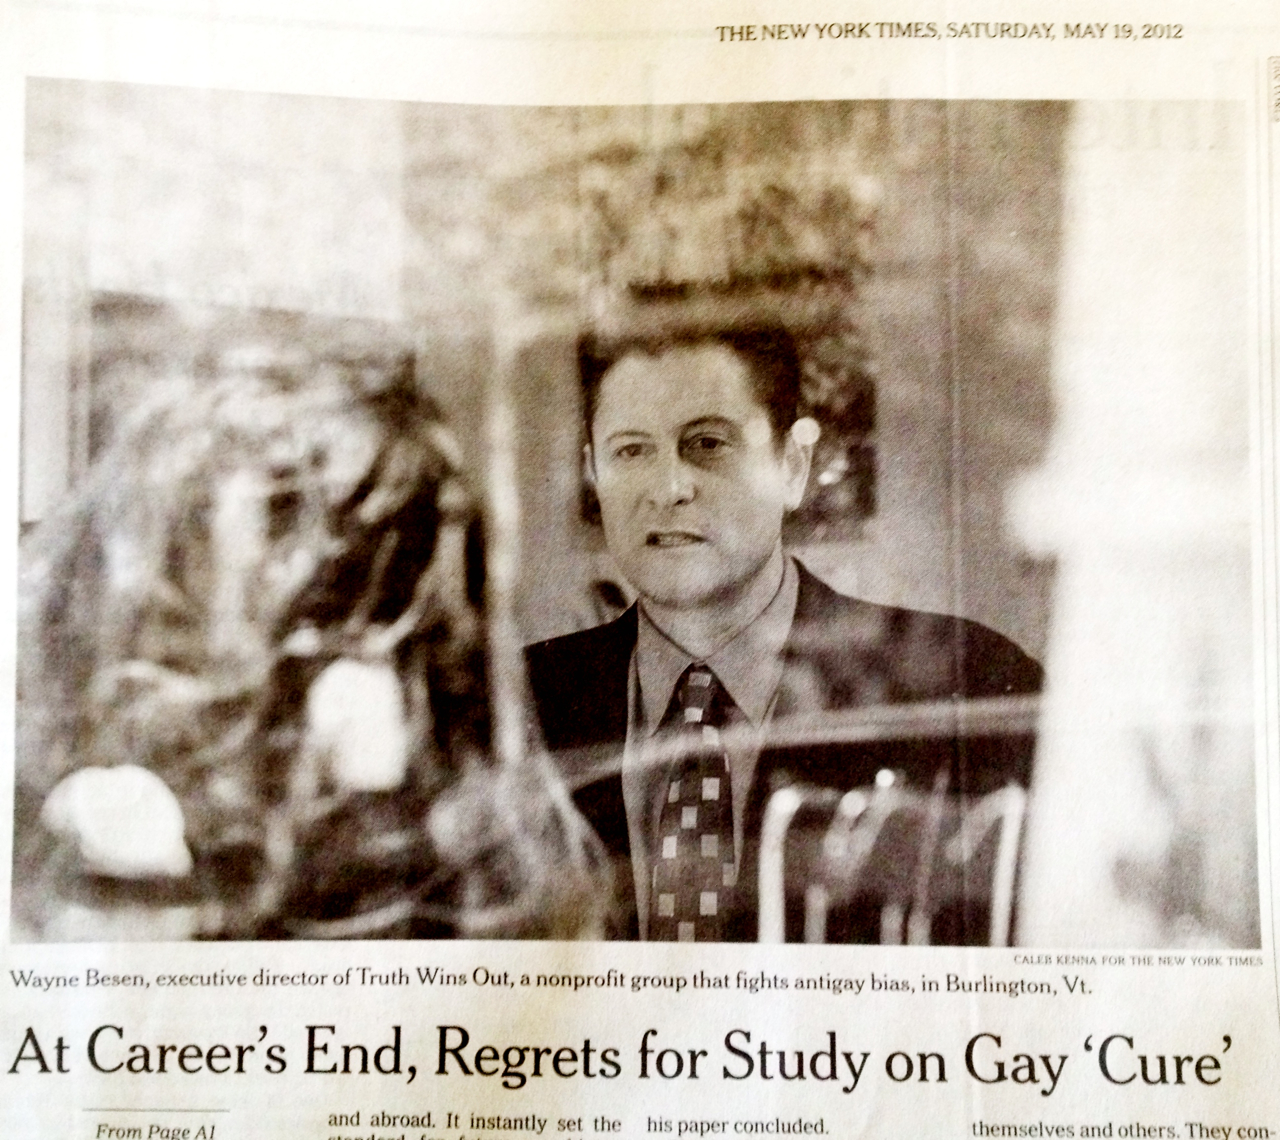 New York Times photo Alert: Major New York Times Story On Dr. Robert Spitzer Renouncing Ex GayStudy